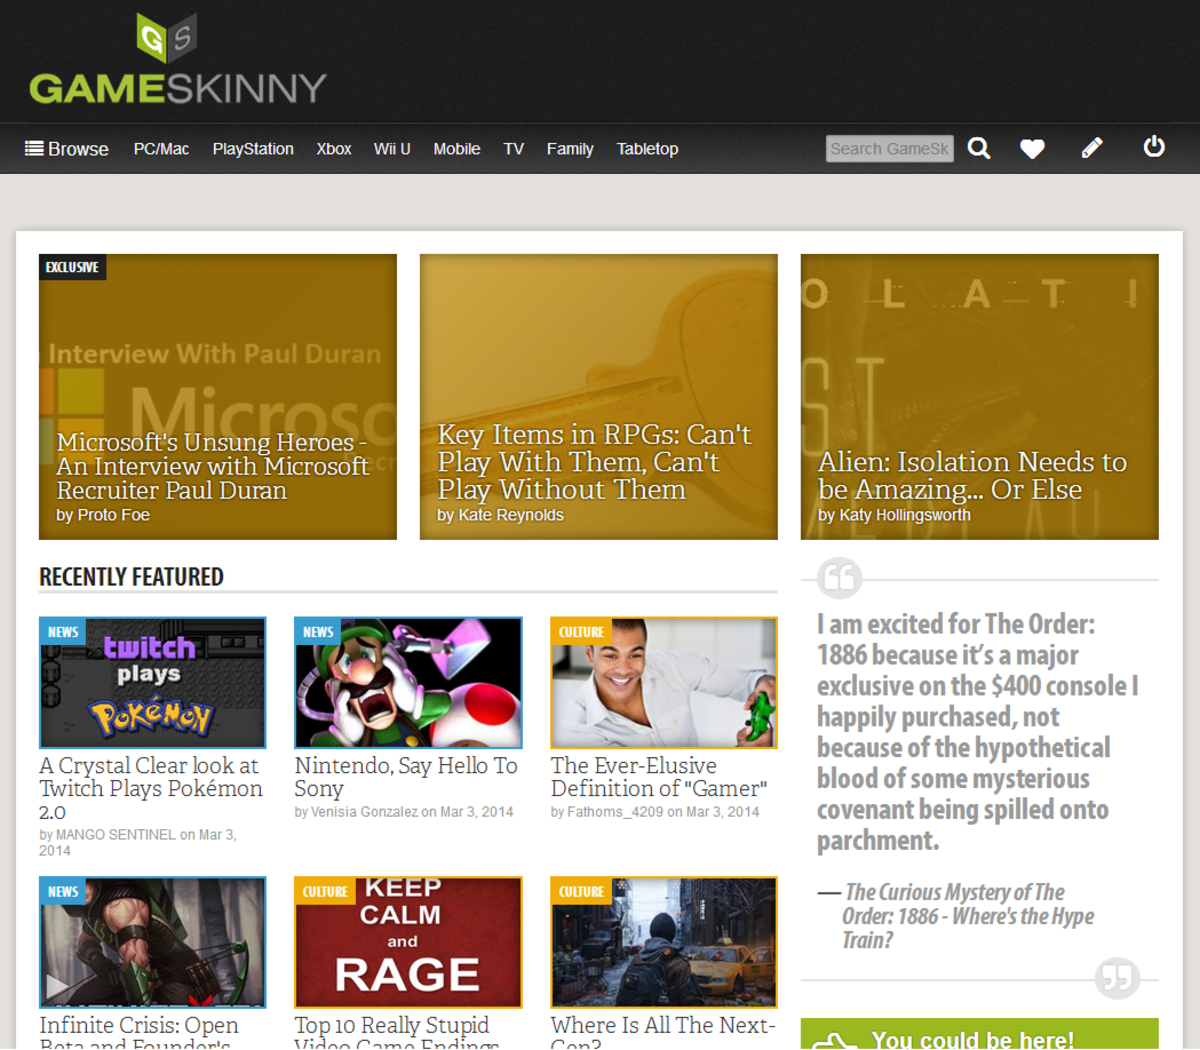 GameSkinny Home Page (March 2014)